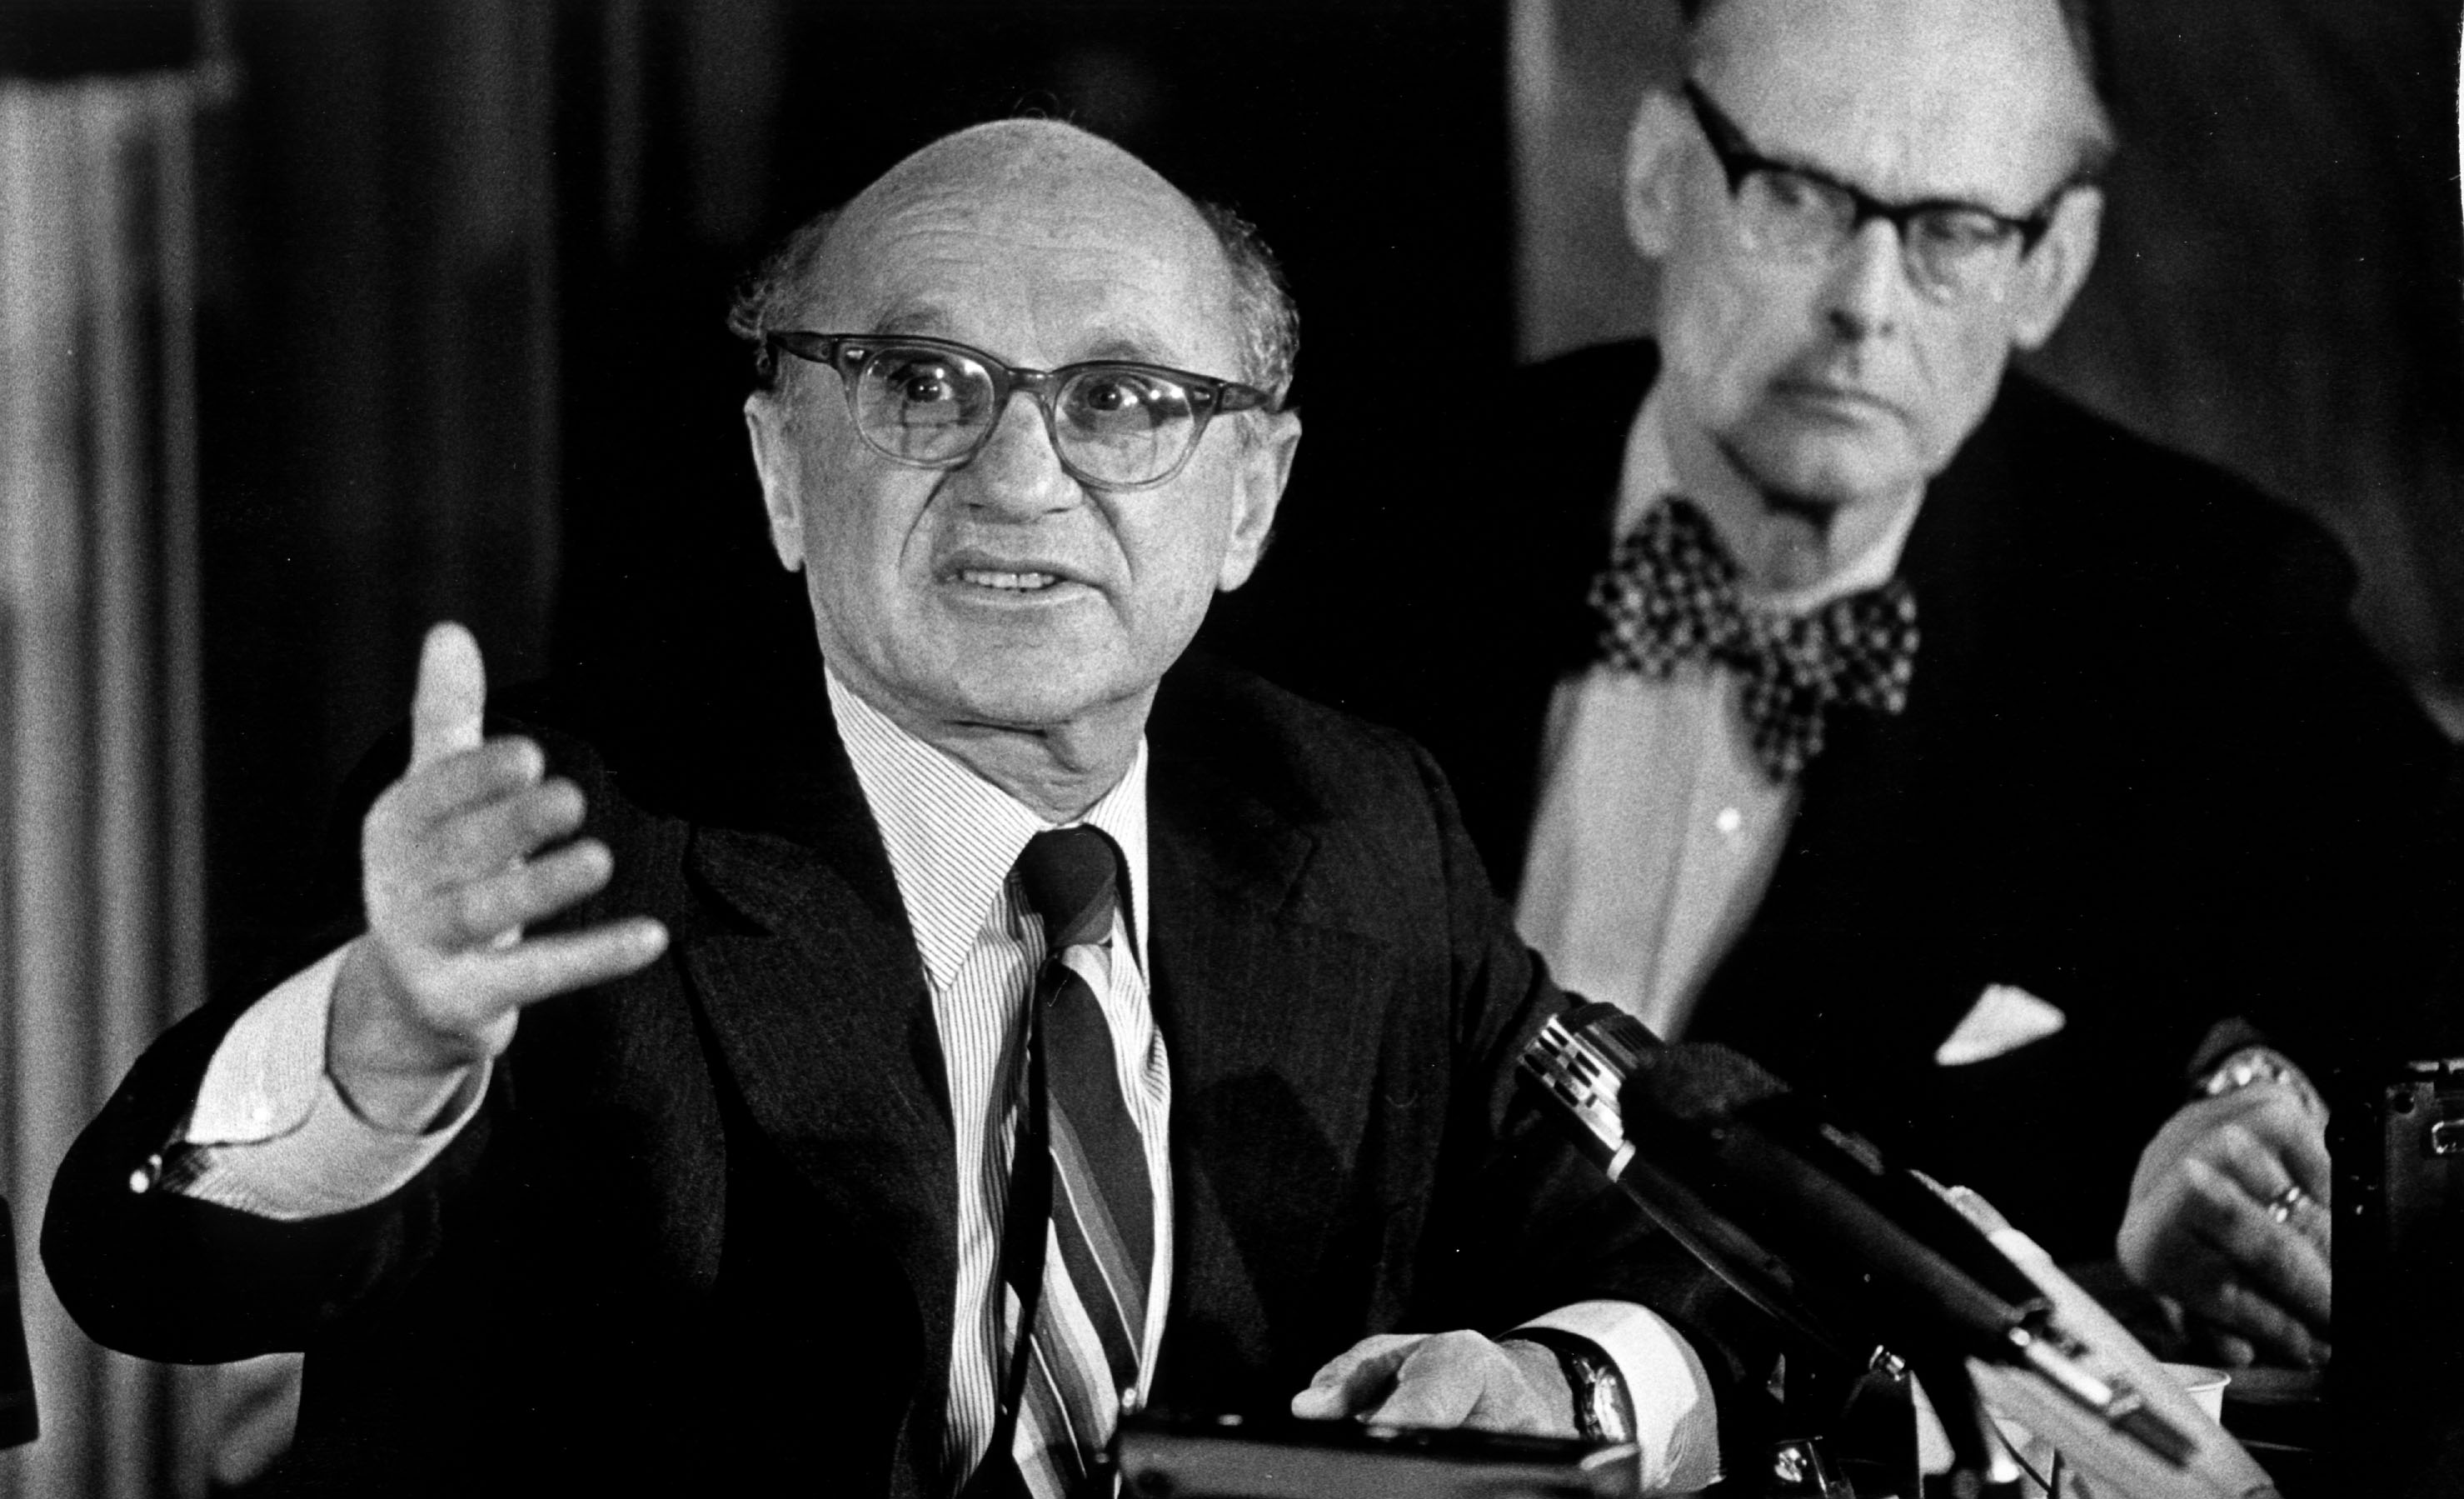 analysis of milton friedman Milton friedman article addresses the role that businesses play in the society and the wider economy the authorargues that the sole purpose of any business is to generate profits for its shareholders.